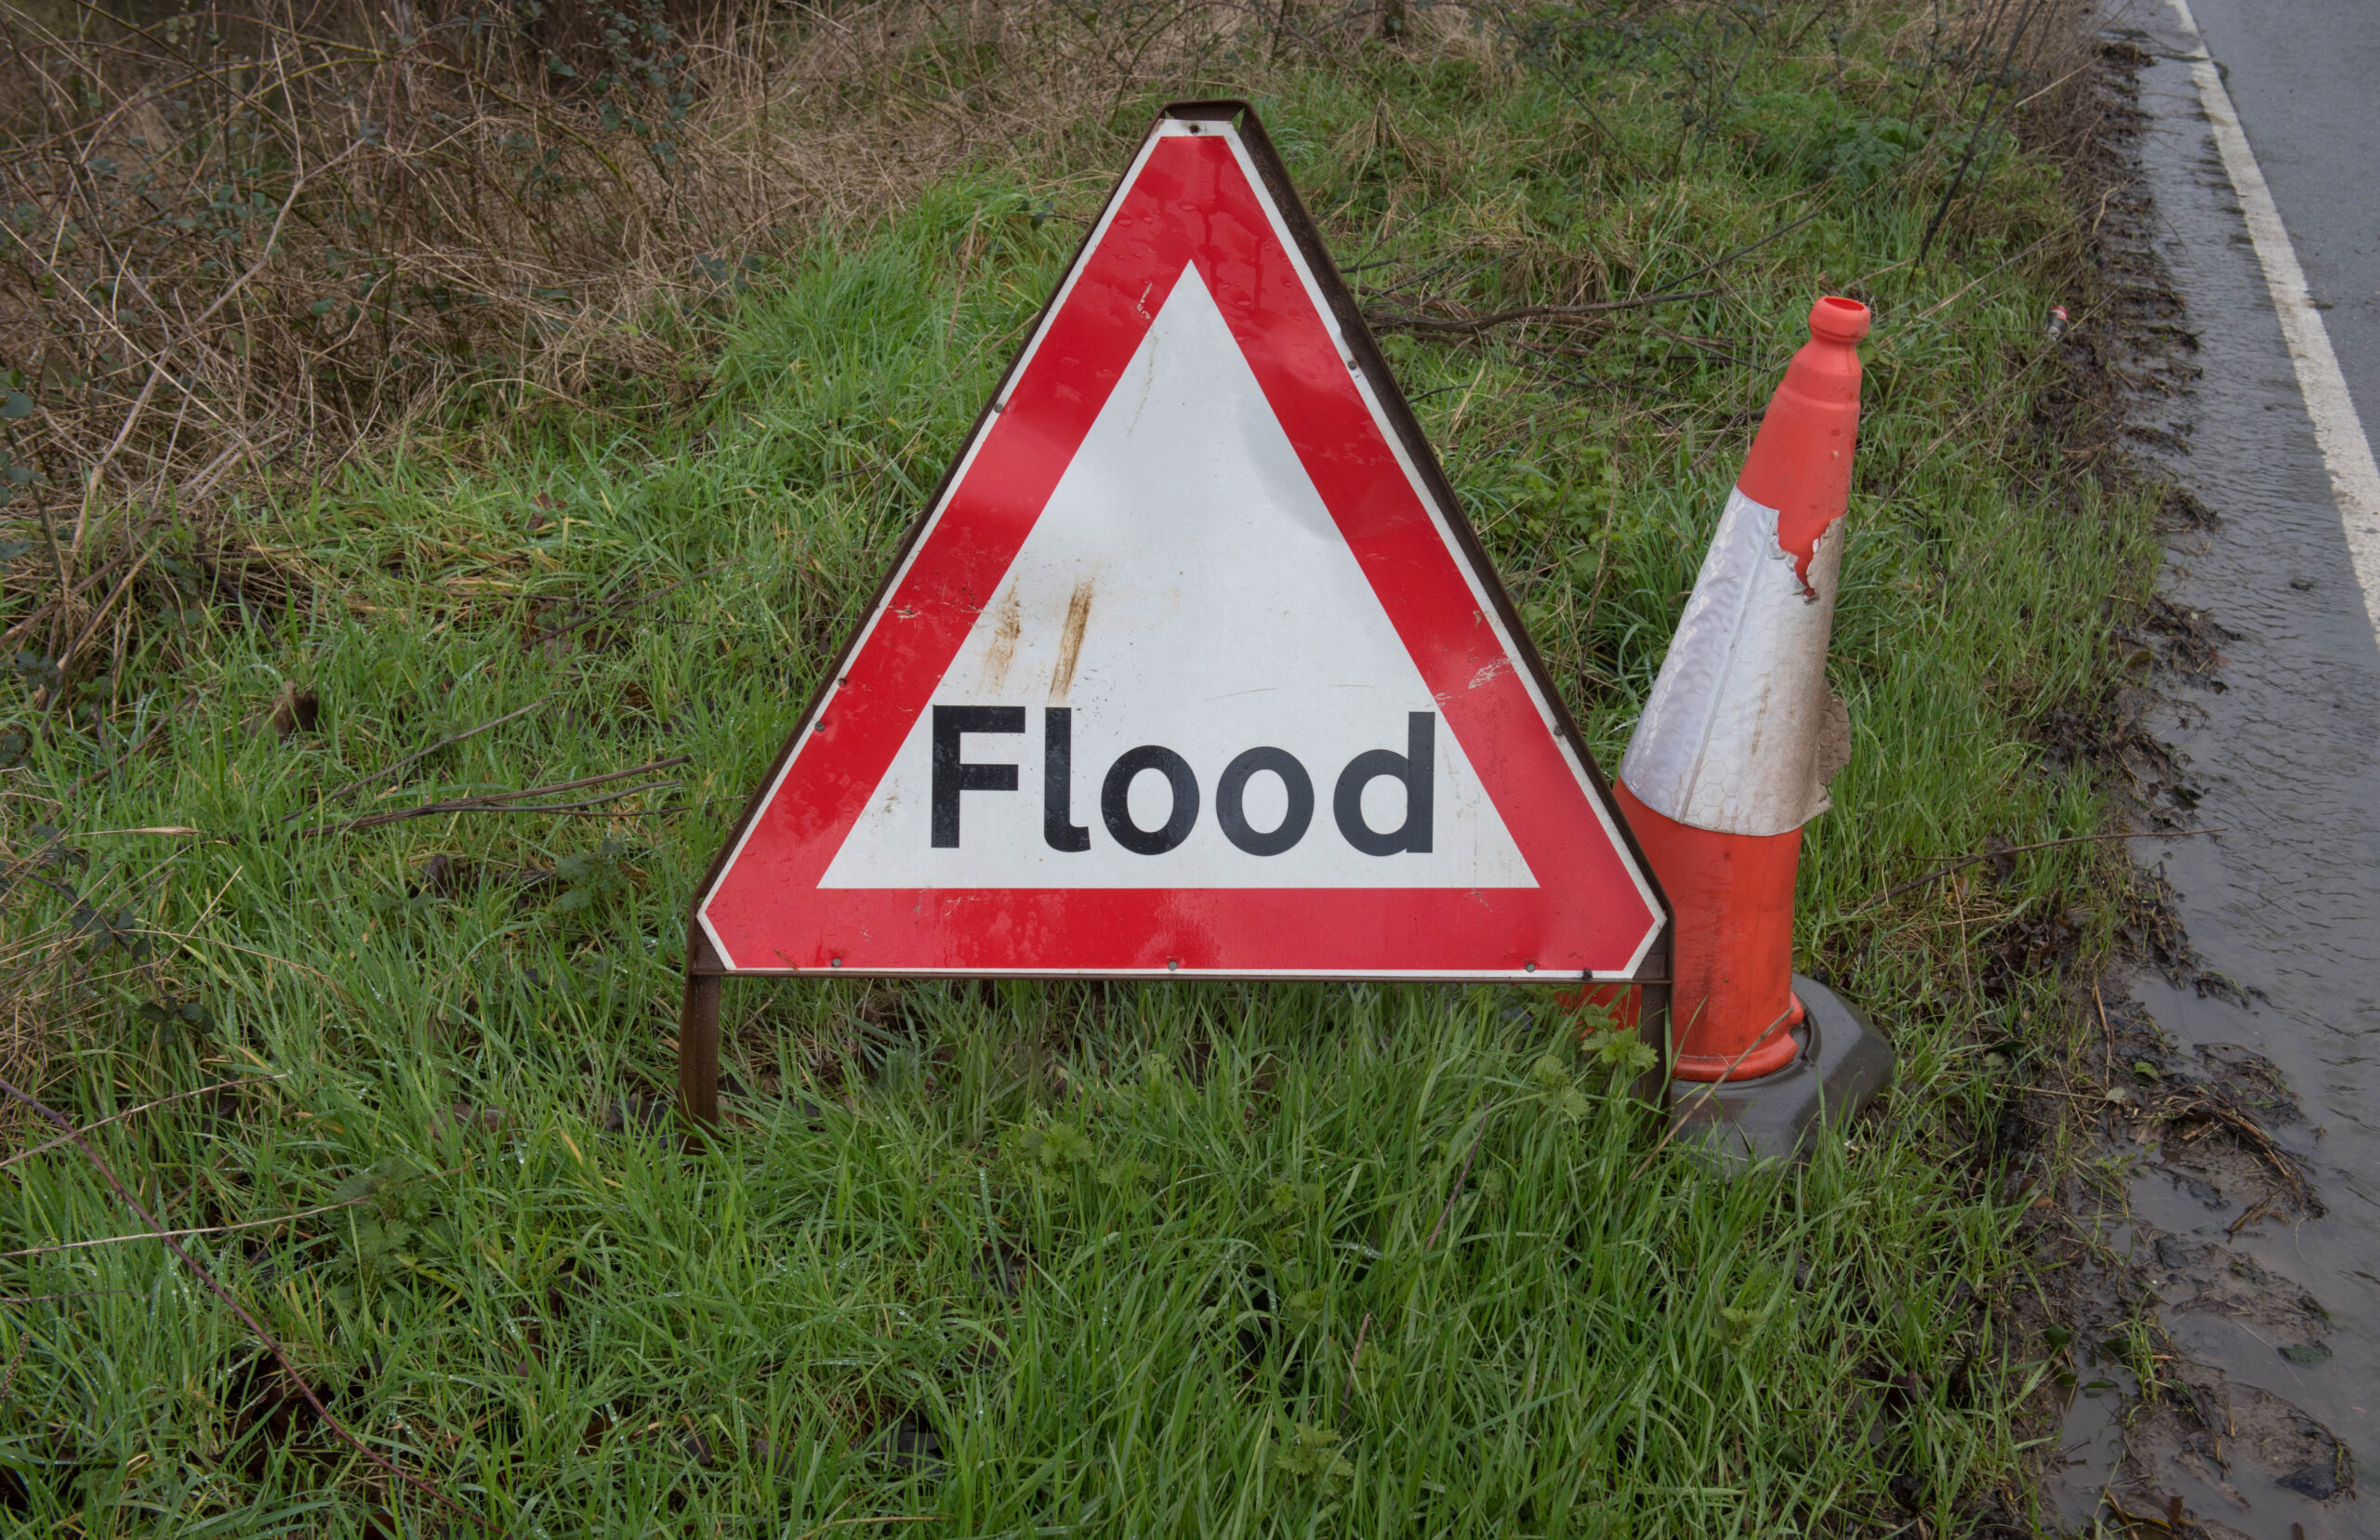 Our plan to stop flooding on London Road